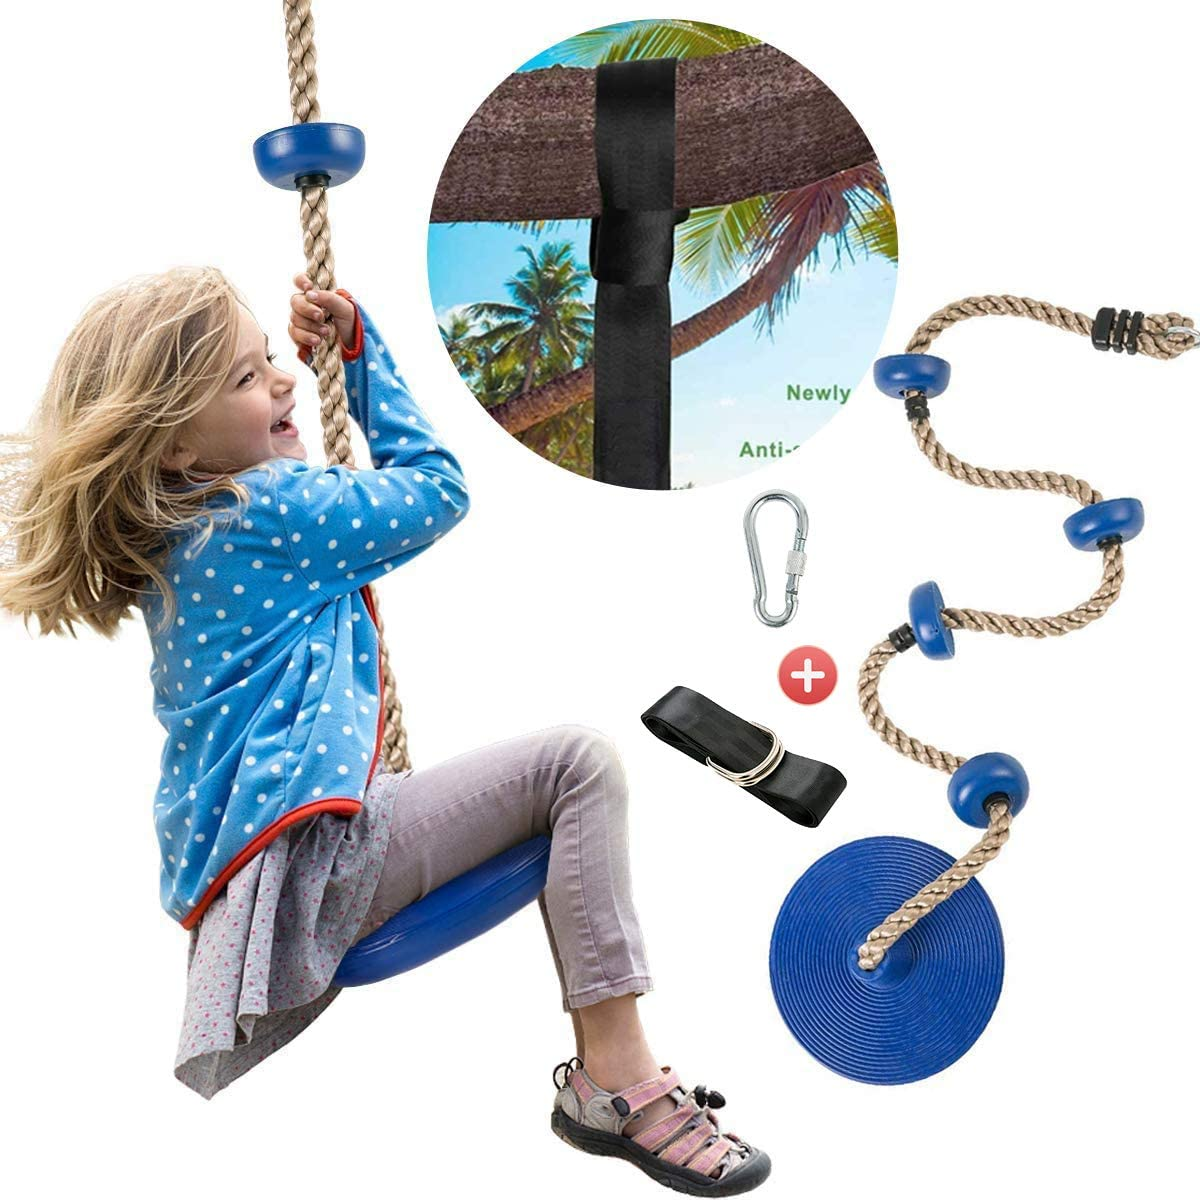 Climbing Rope Disc Tree Swing for Kids-Tree Straps Swings Sets Seat,Outside Toys Kit,Backyard Play Equipment for Kids Yellow